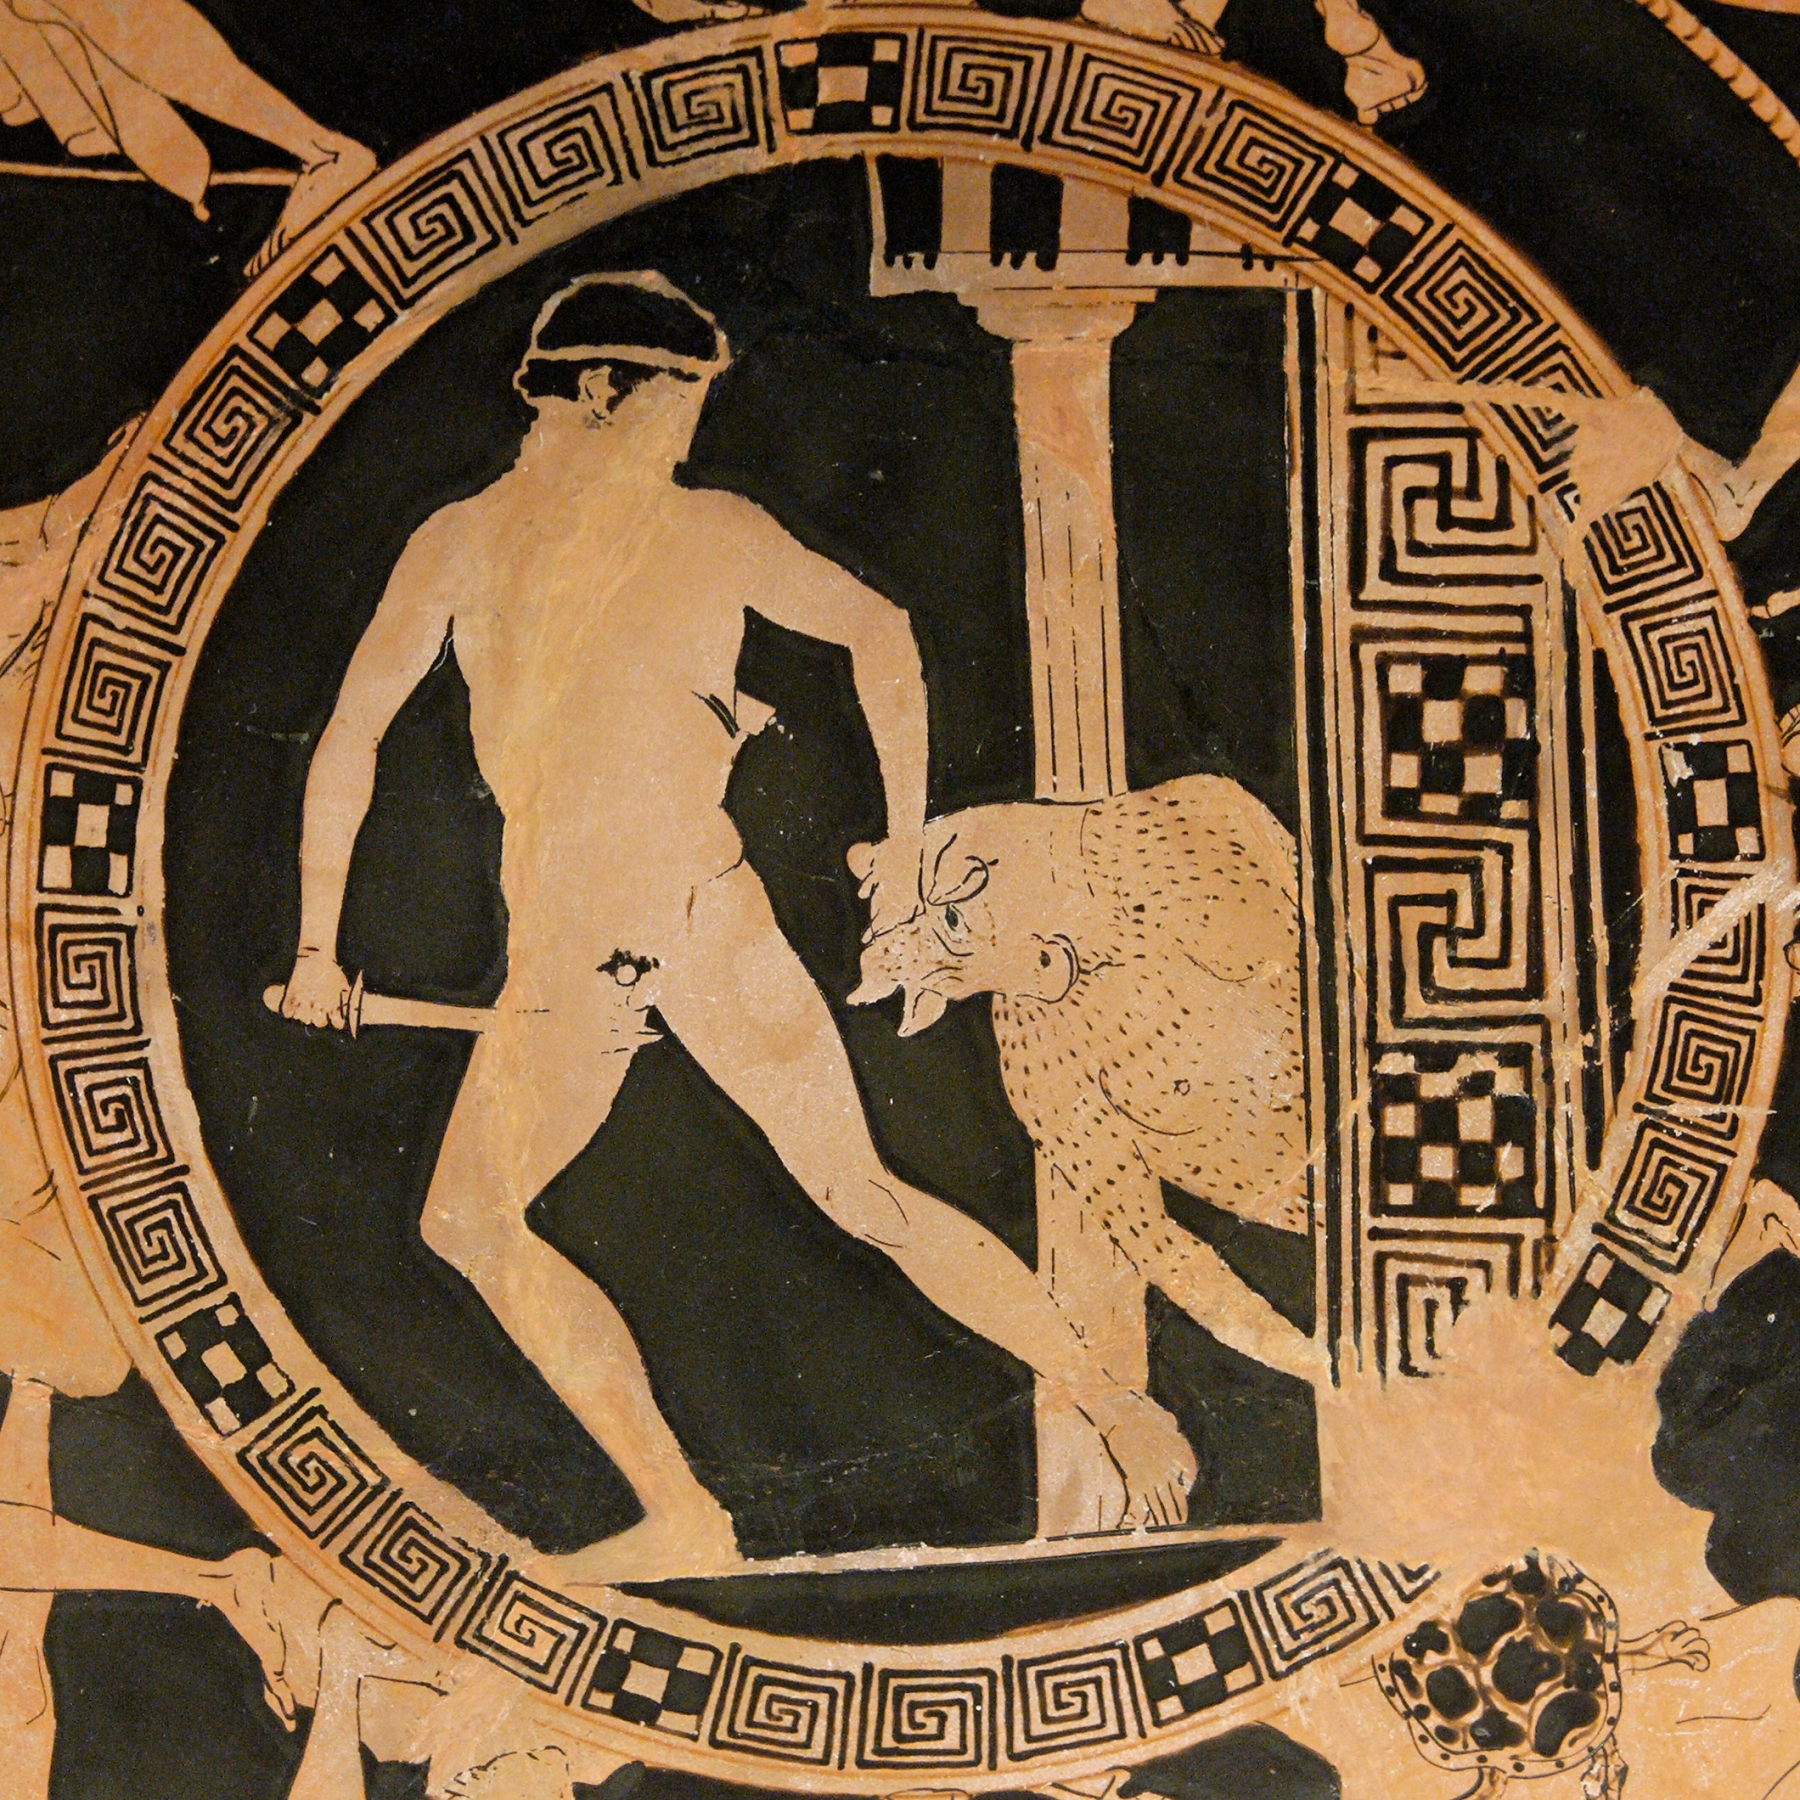 http://upload.wikimedia.org/wikipedia/commons/d/d6/Theseus_Minotaur_BM_Vase_E84.jpg